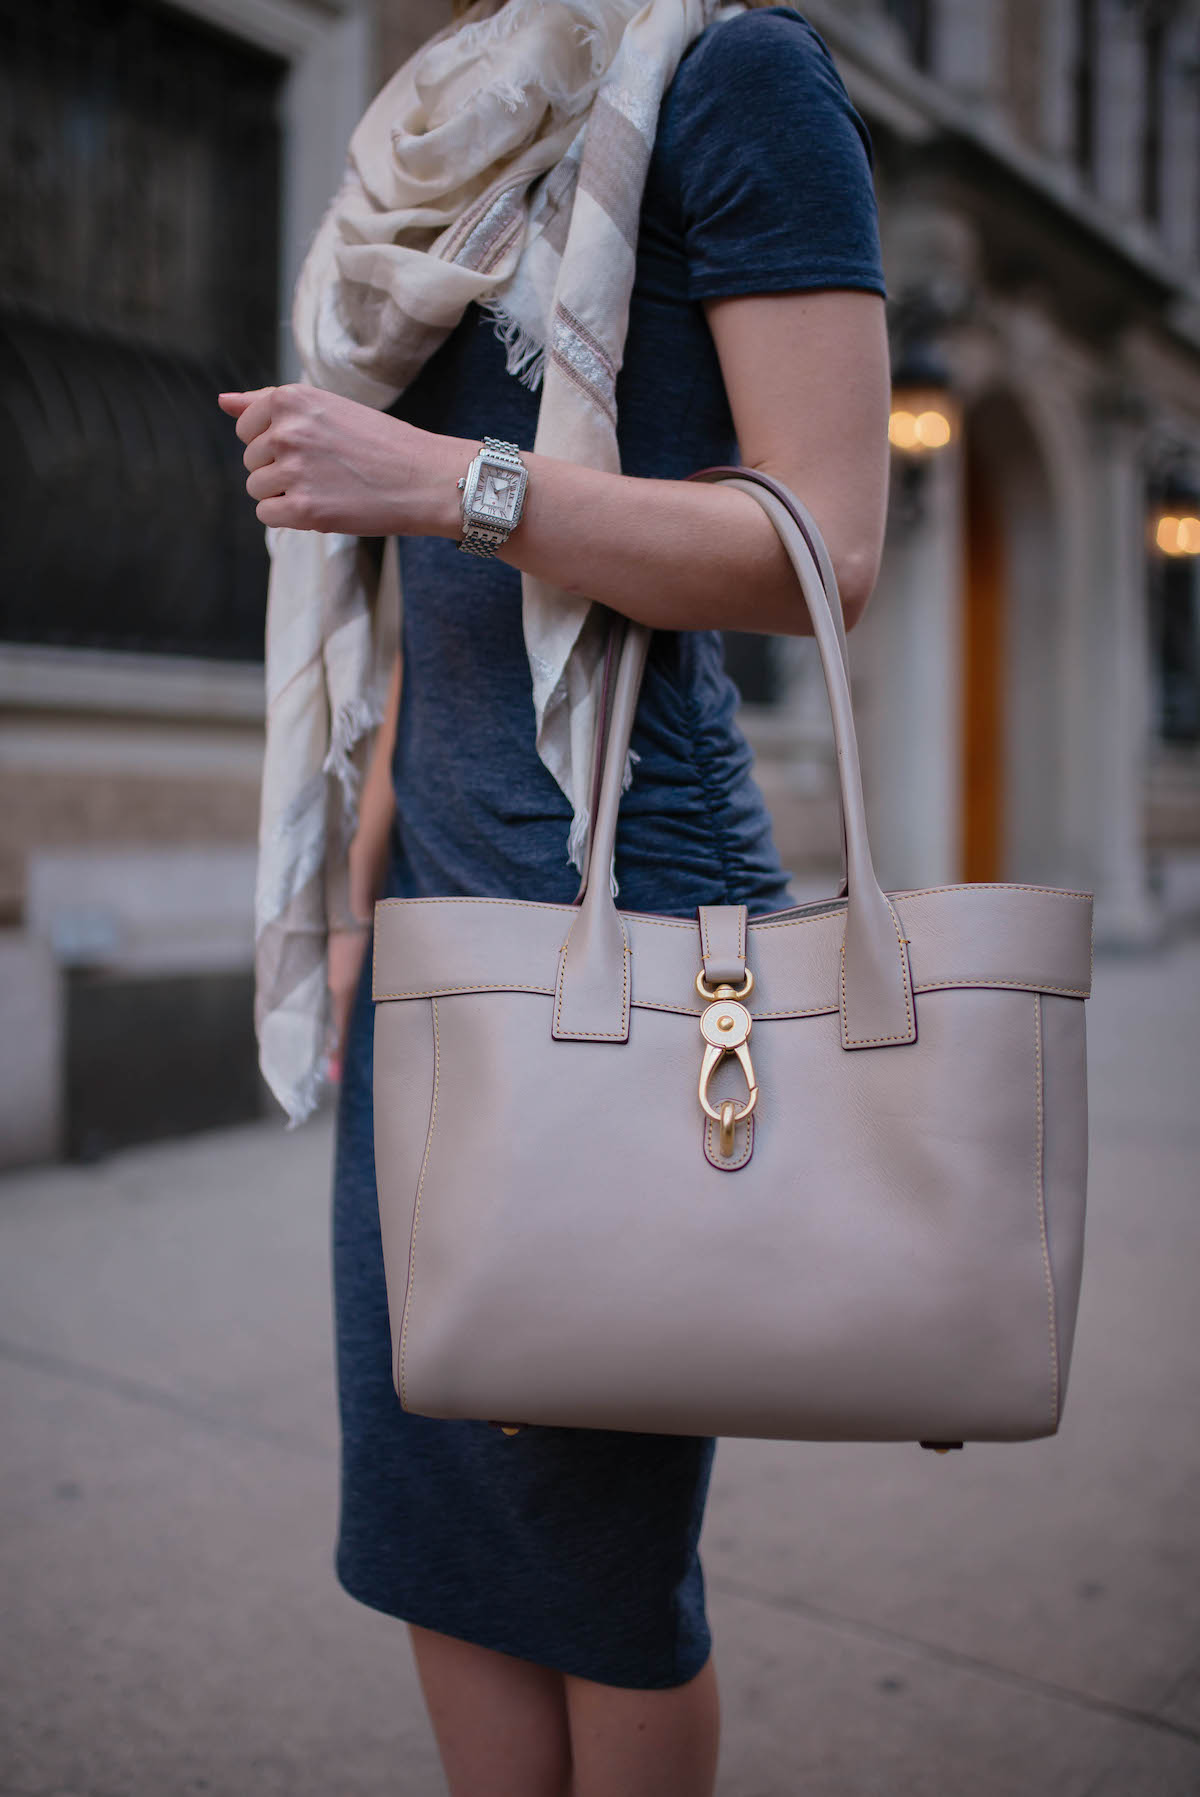 The Classic Everyday Handbags Im Obsessed With Katies Bliss